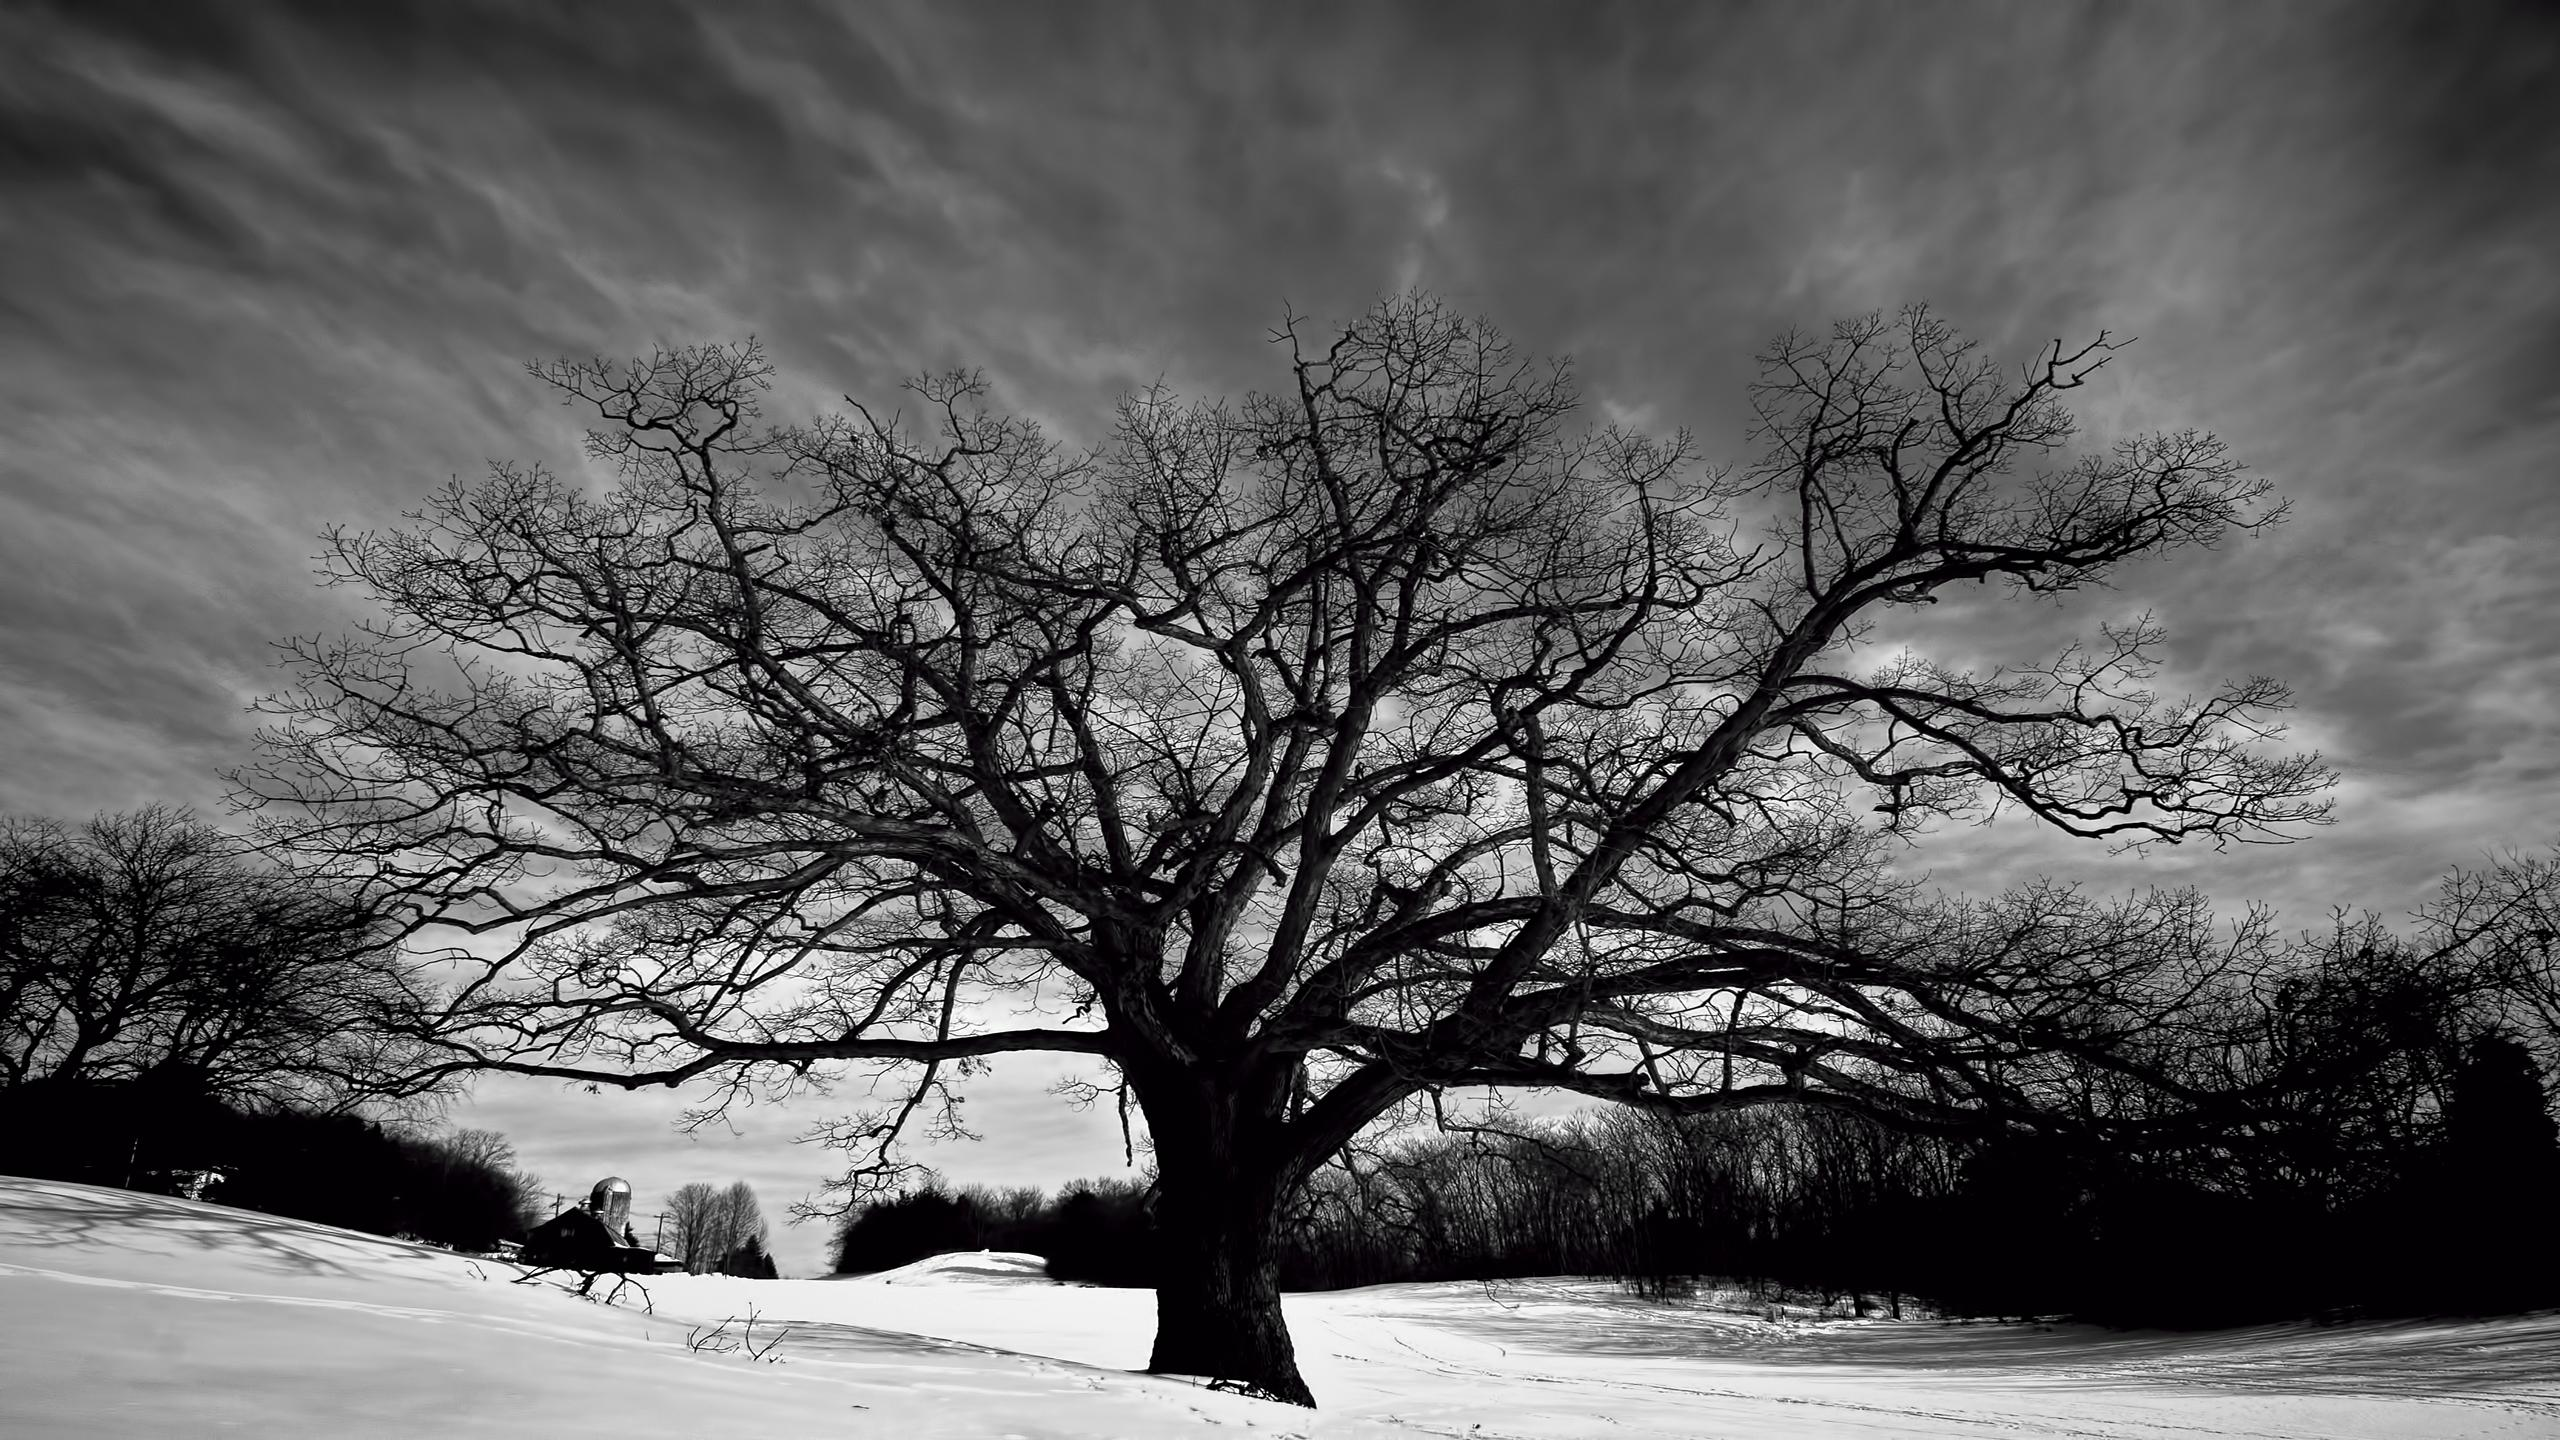 Tree Black and White Free Pc Wallpaper Downloads 4349 - Amazing